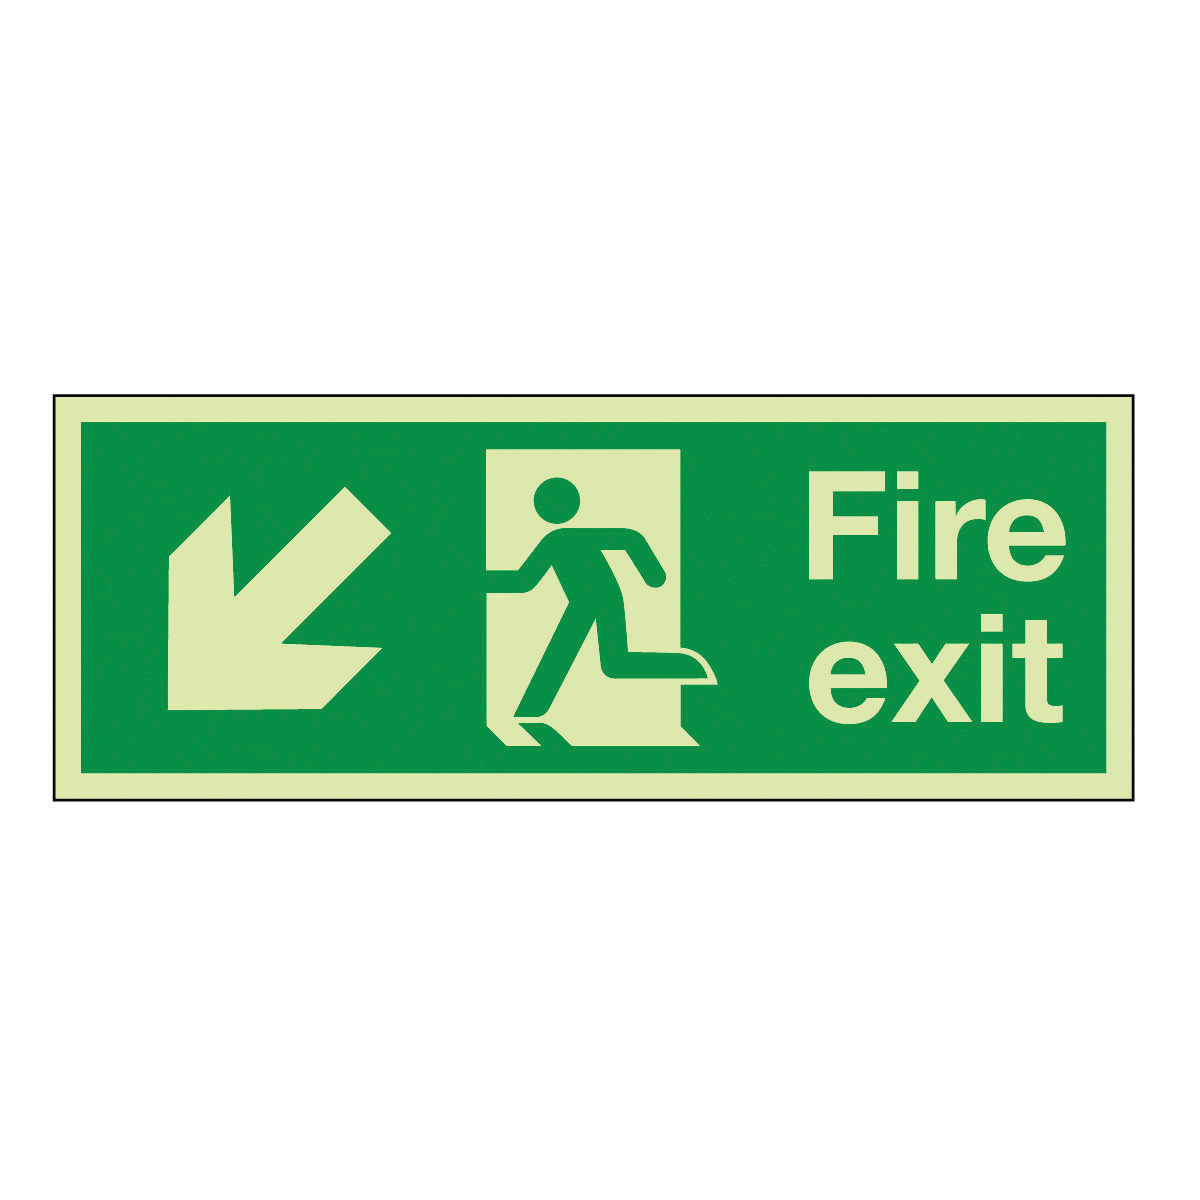 Fire Exit Running Man Right Arrow Diagonal Down Left